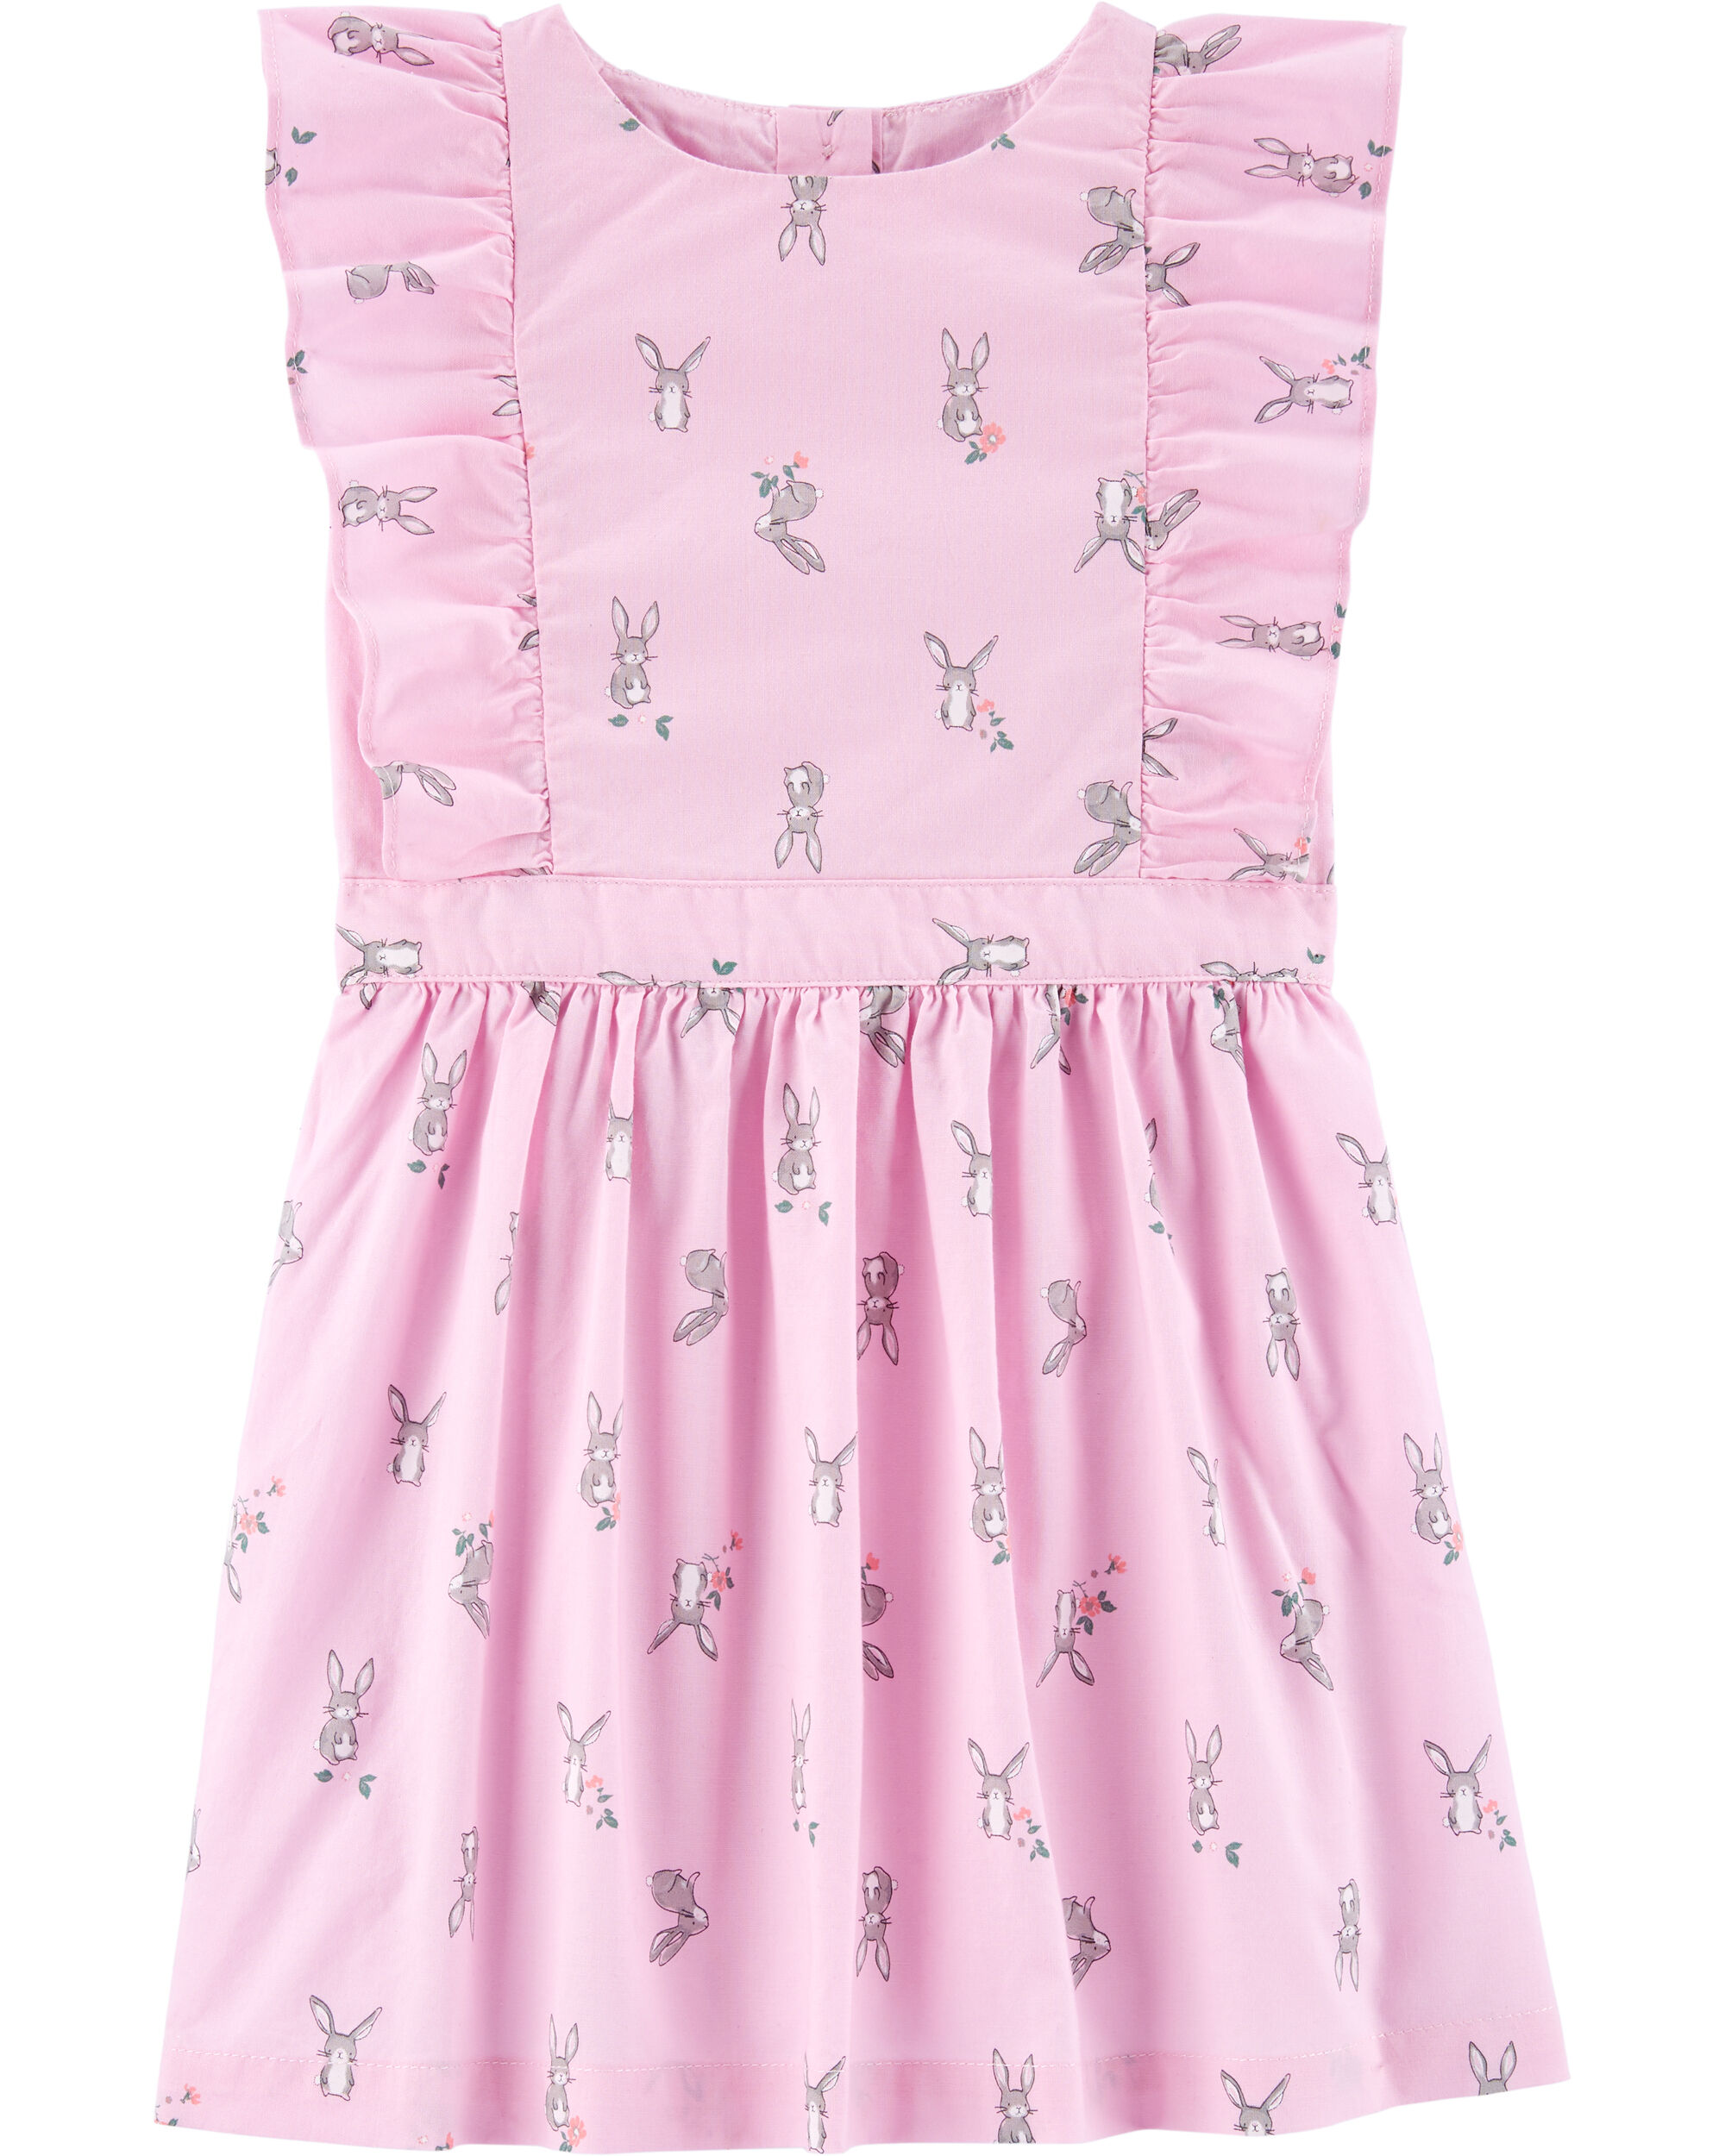 Bunny Flutter Dress